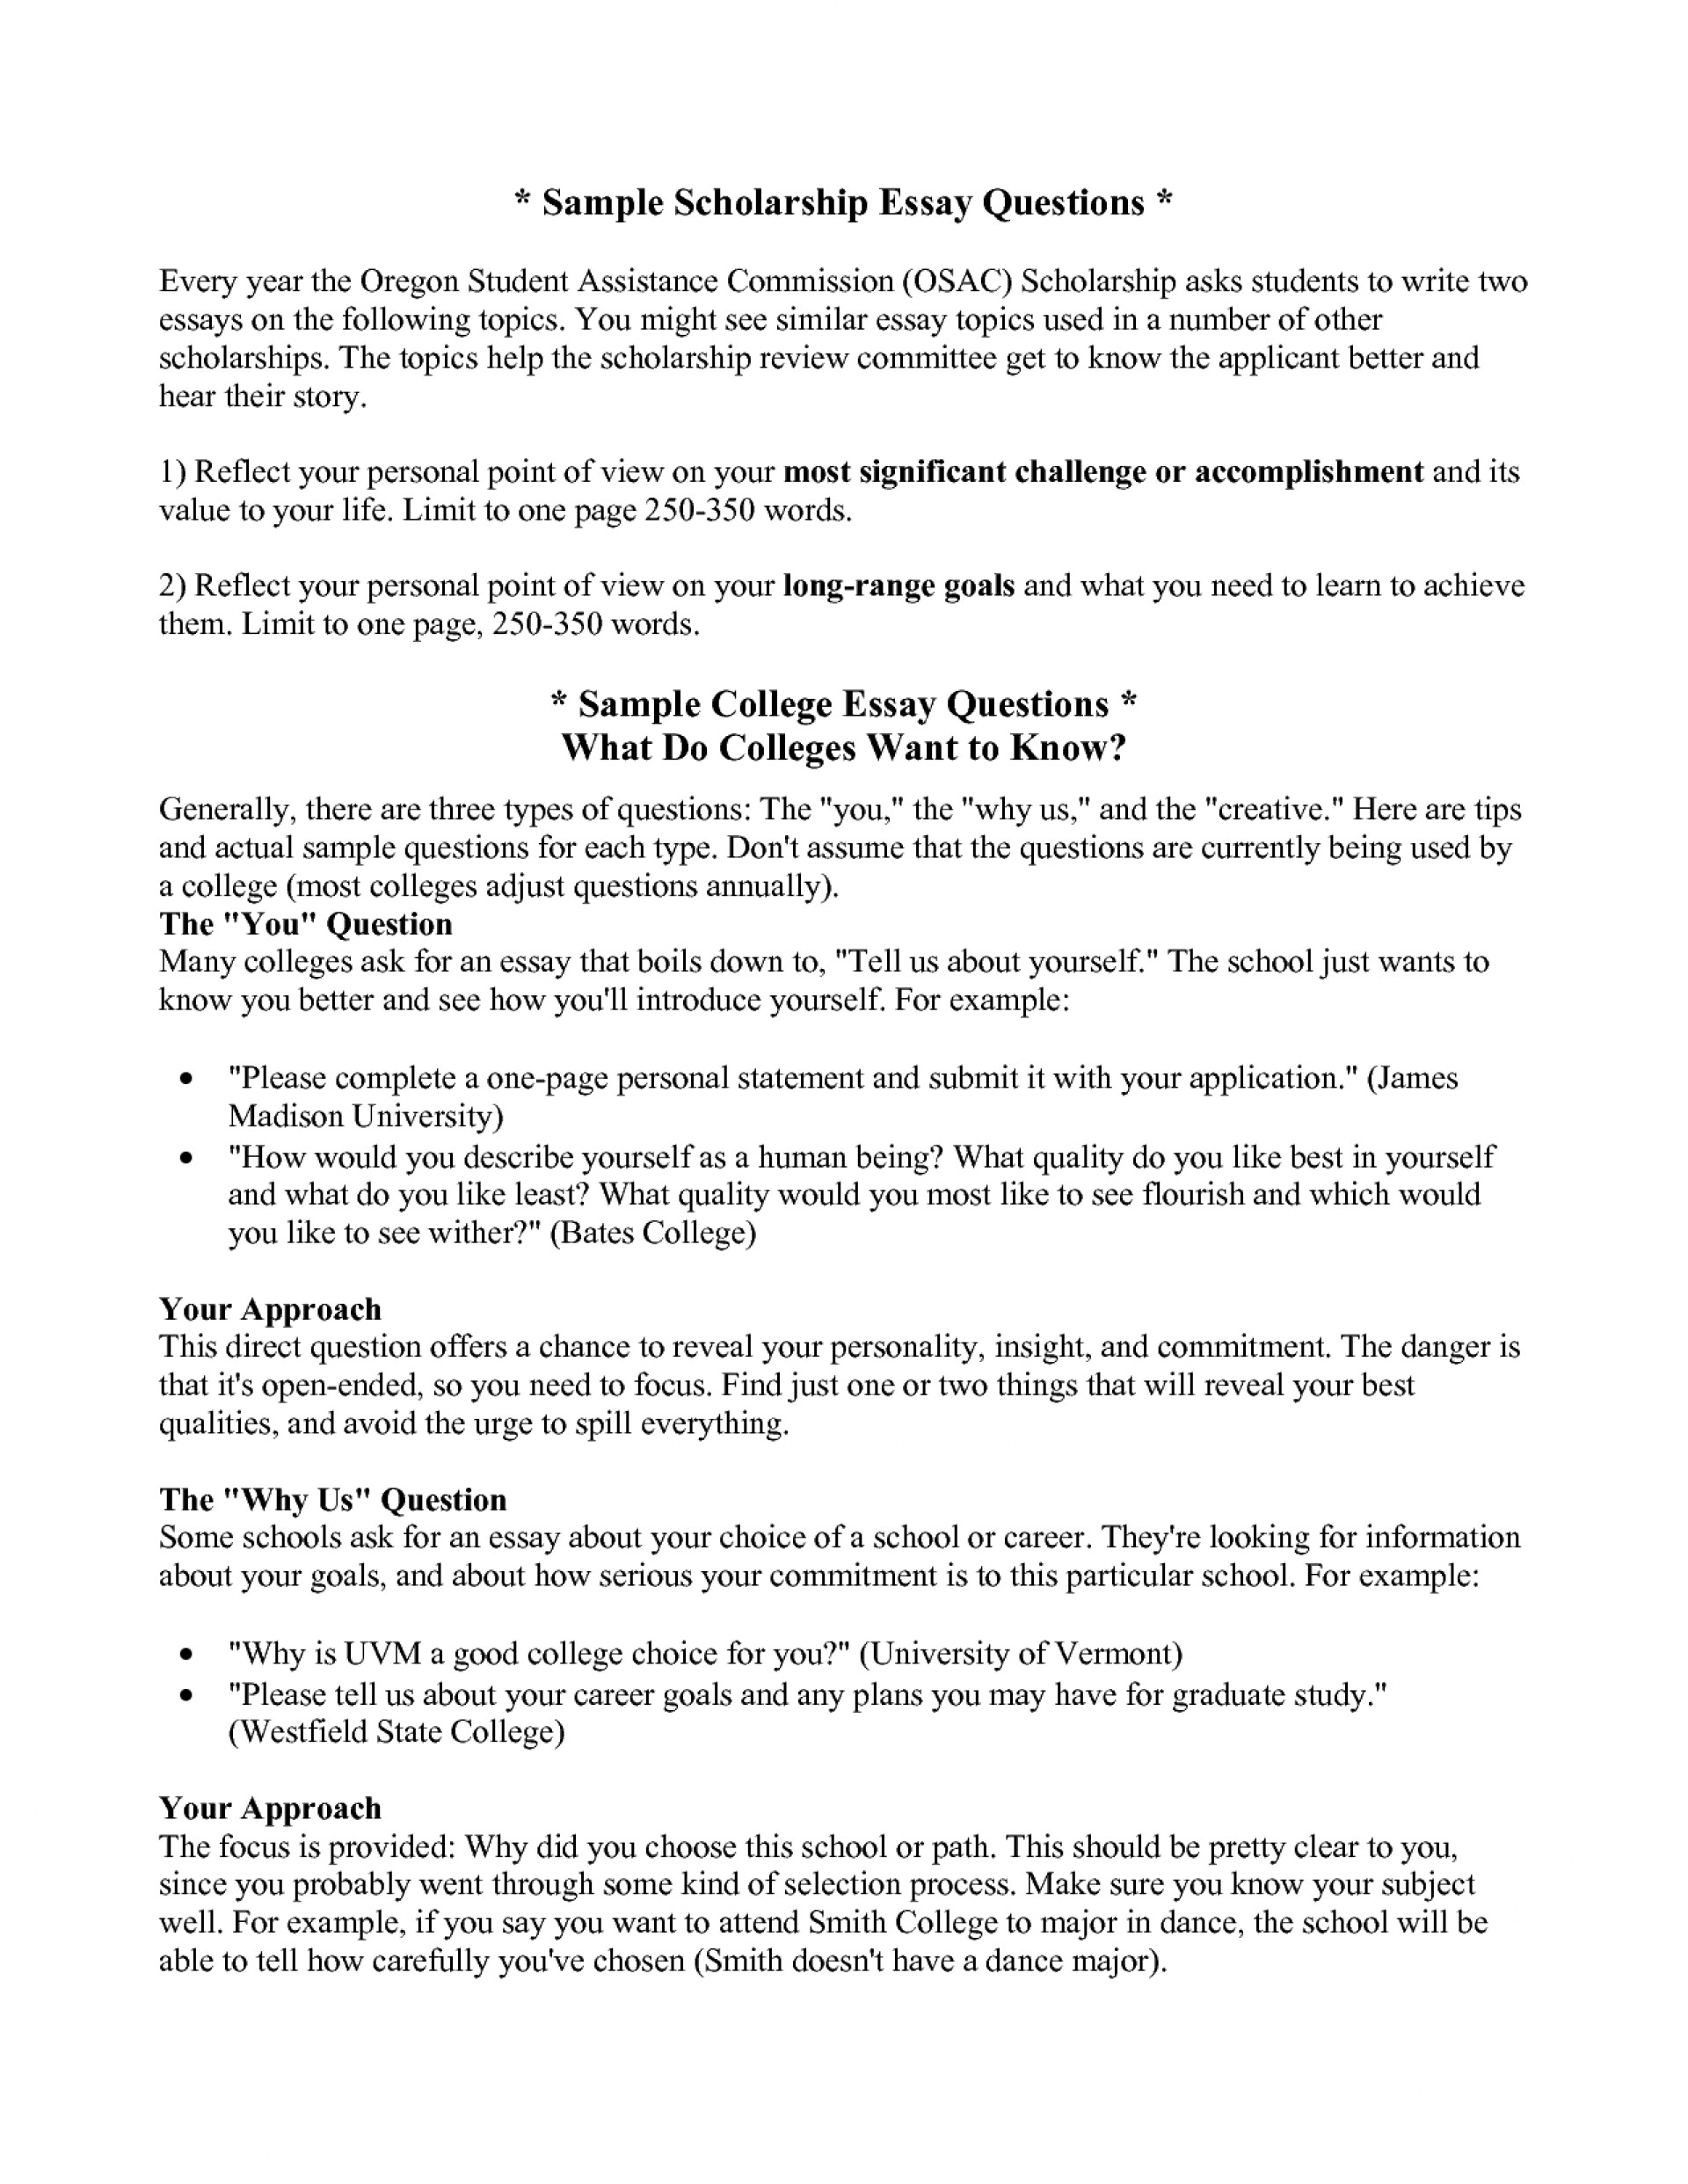 008 Essay Example What Is An Question Critical Thinking In College Management Houston Top Ten Mfa Sample For Your Template Application Questions Frightening Type Modified 1920